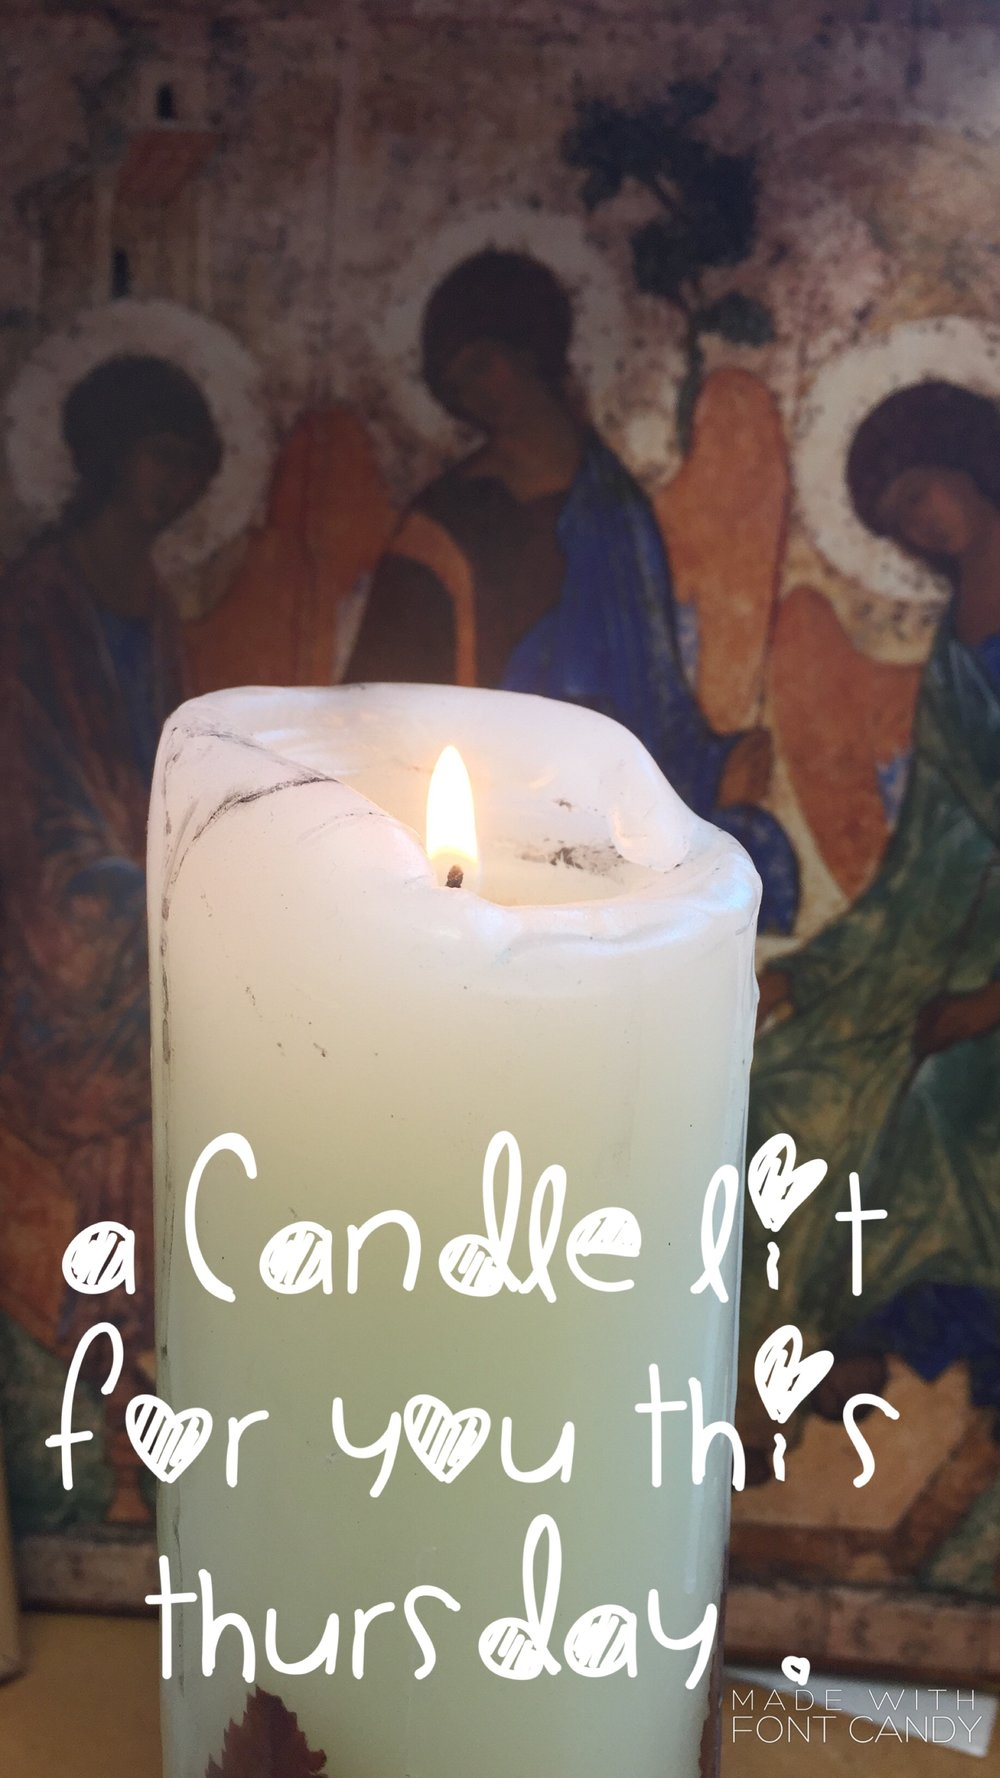 Holy Thursday - Jesus, I light this candle for my brothers & sisters: the kind, the brave, the tired, the scared, enfold your arms around them. So this Thursday morning, may they be blessed & bathed in love. Amen.